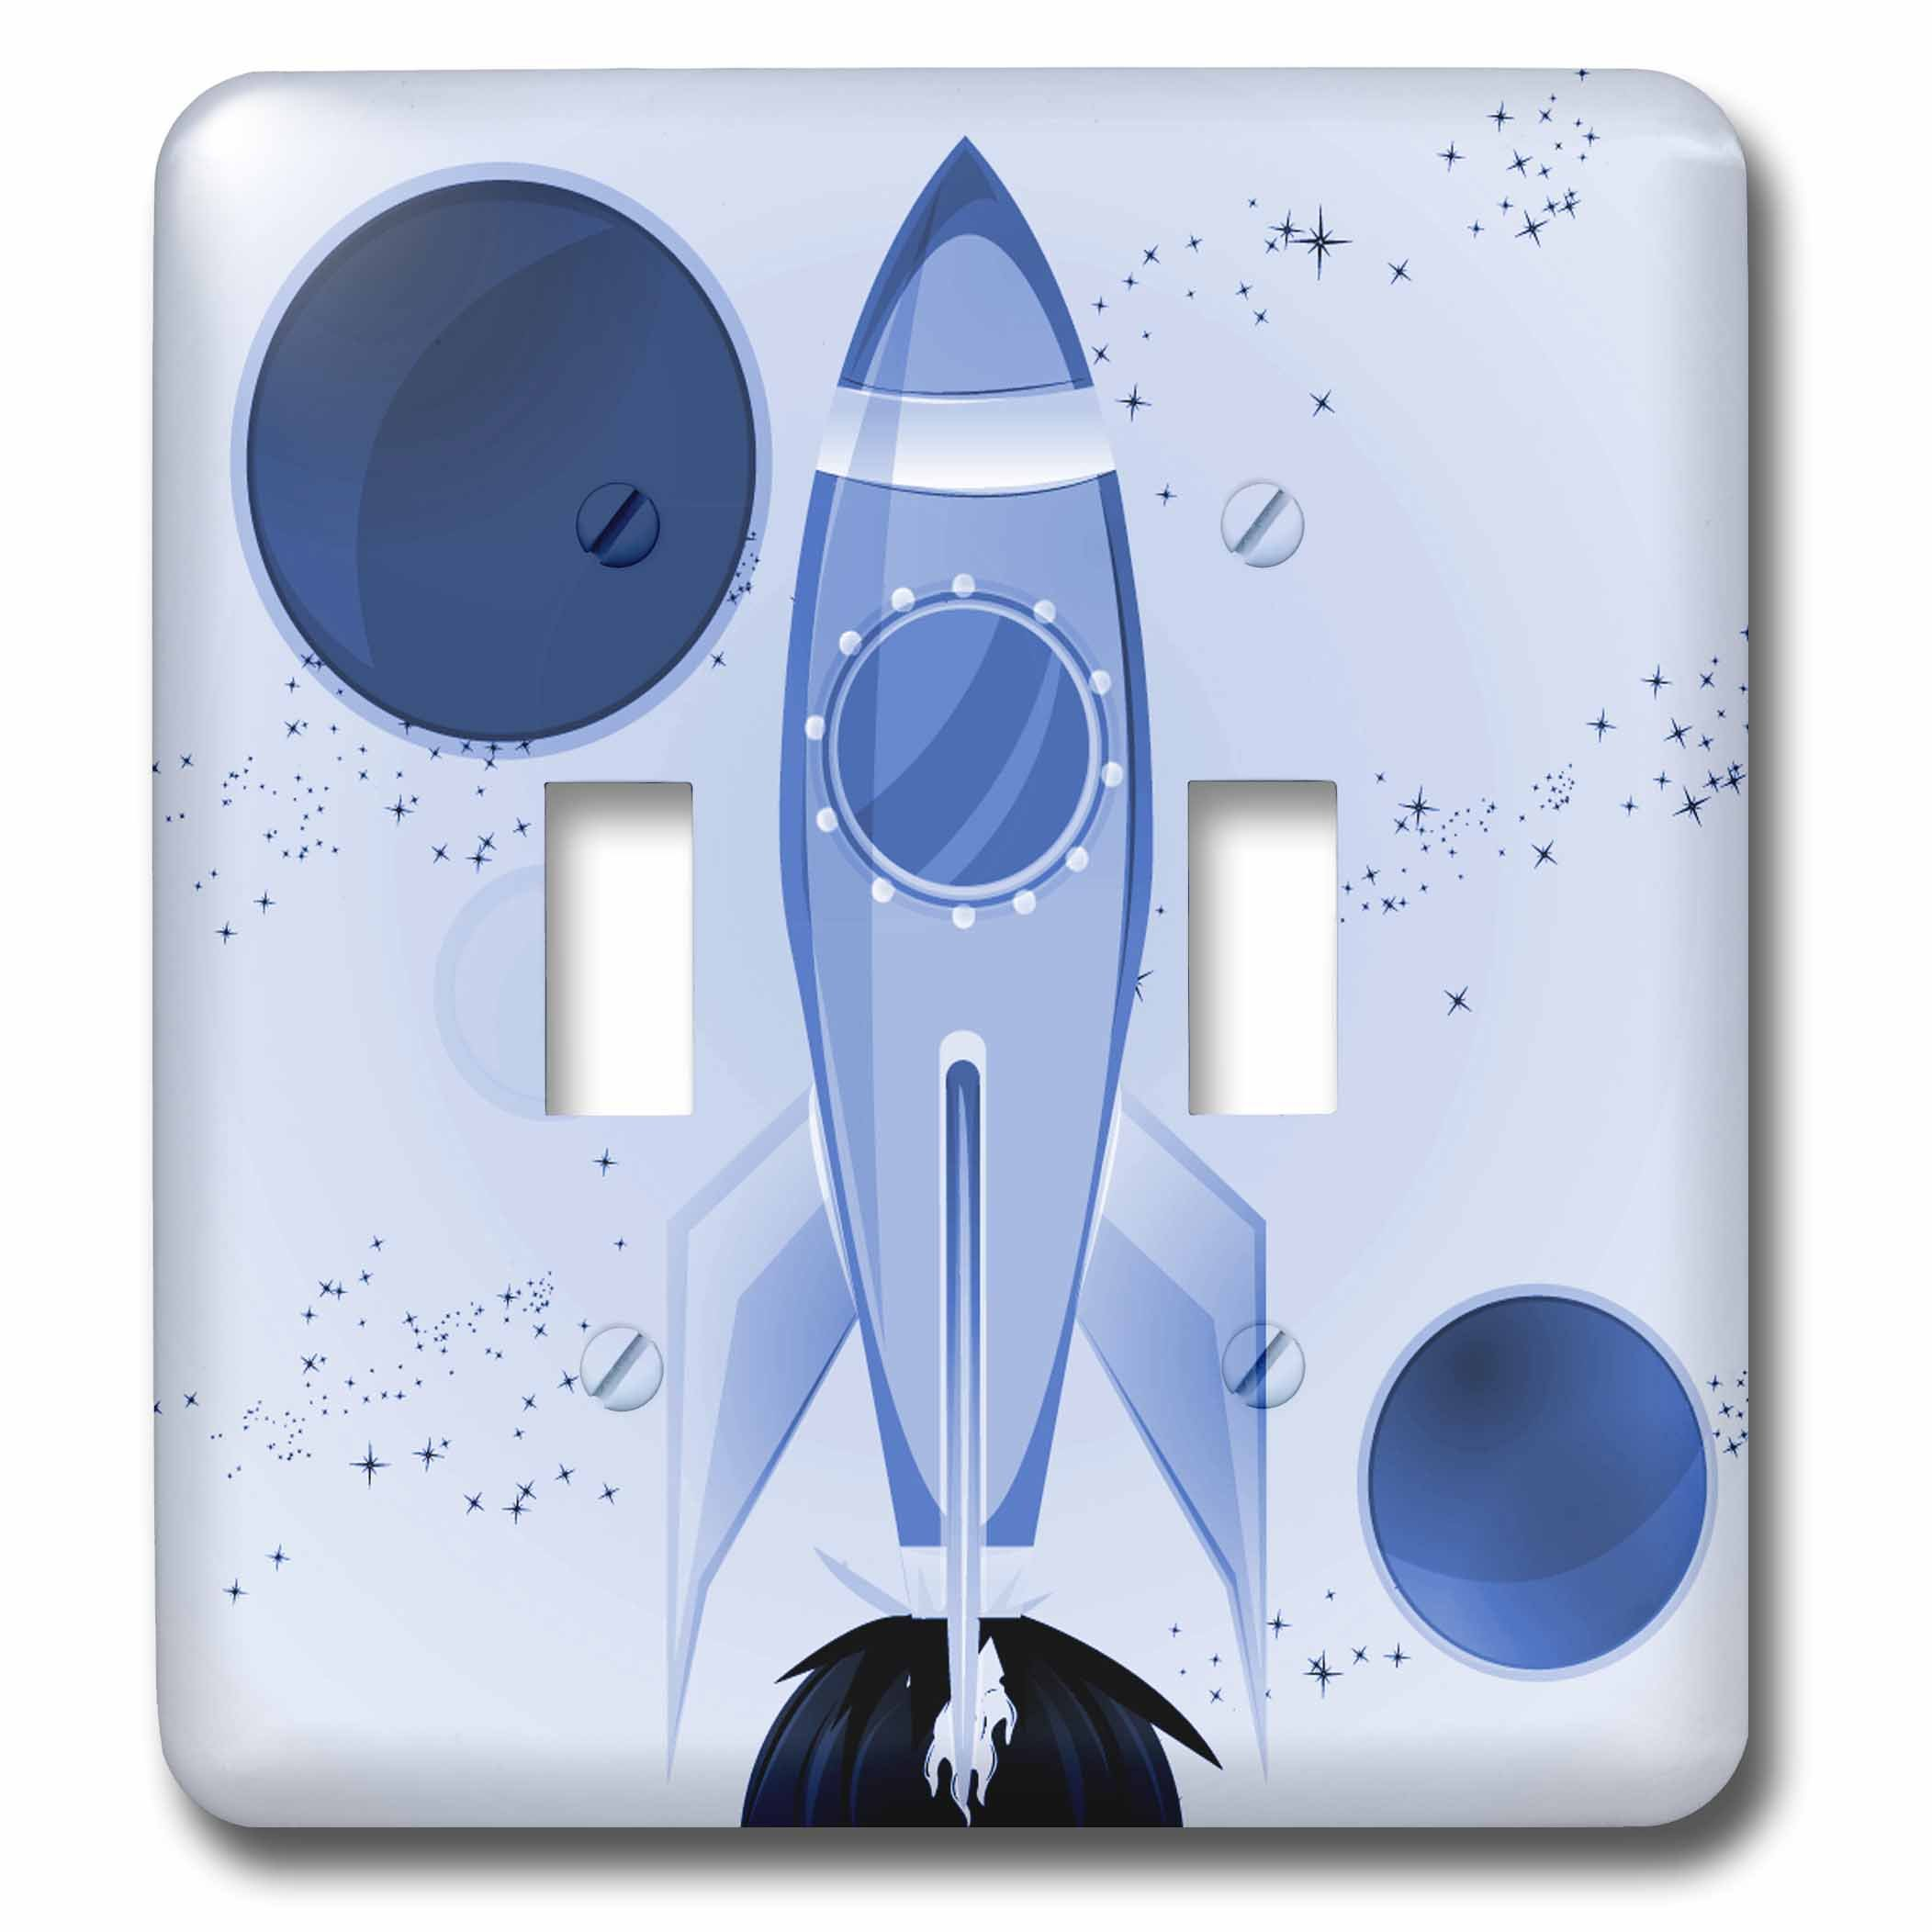 3dRose lsp_111579_2 Boys Rocket Ship with Planets Design Background Double Toggle Switch, Light Blue